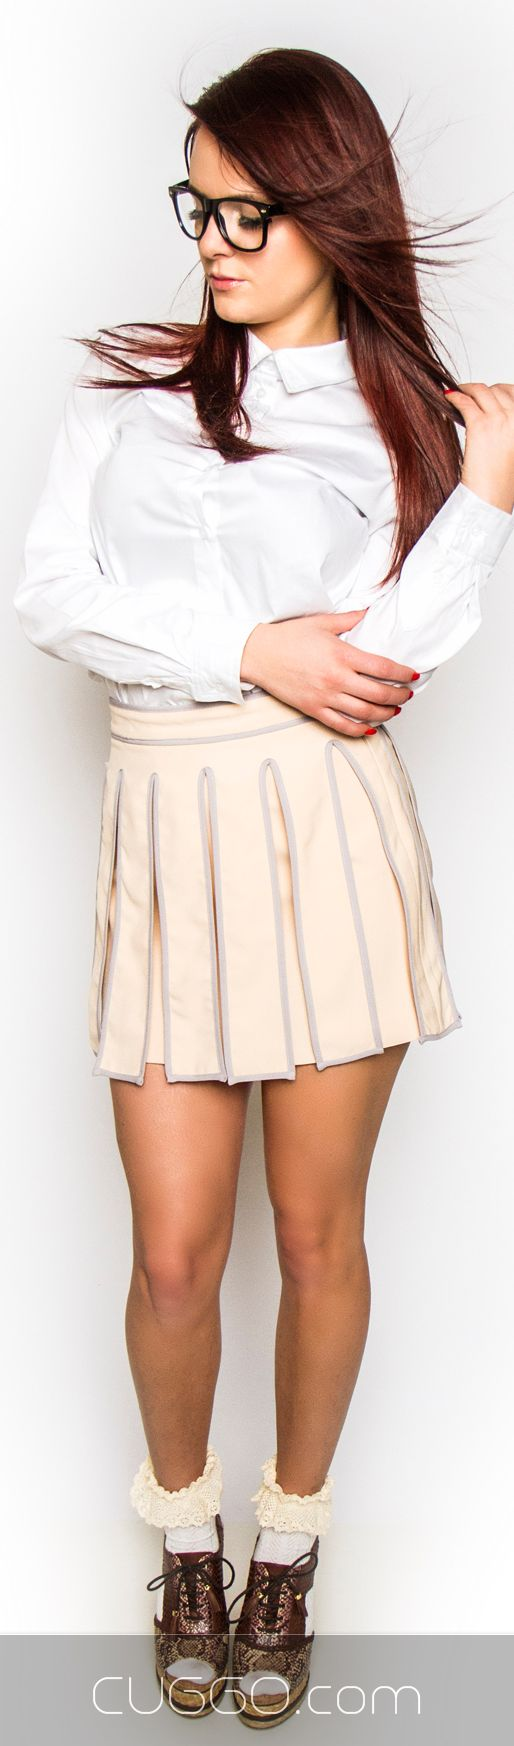 Shop this Blush Kilt Mini Skirt on cuggo.com http://www.womenswatchhouse.com/